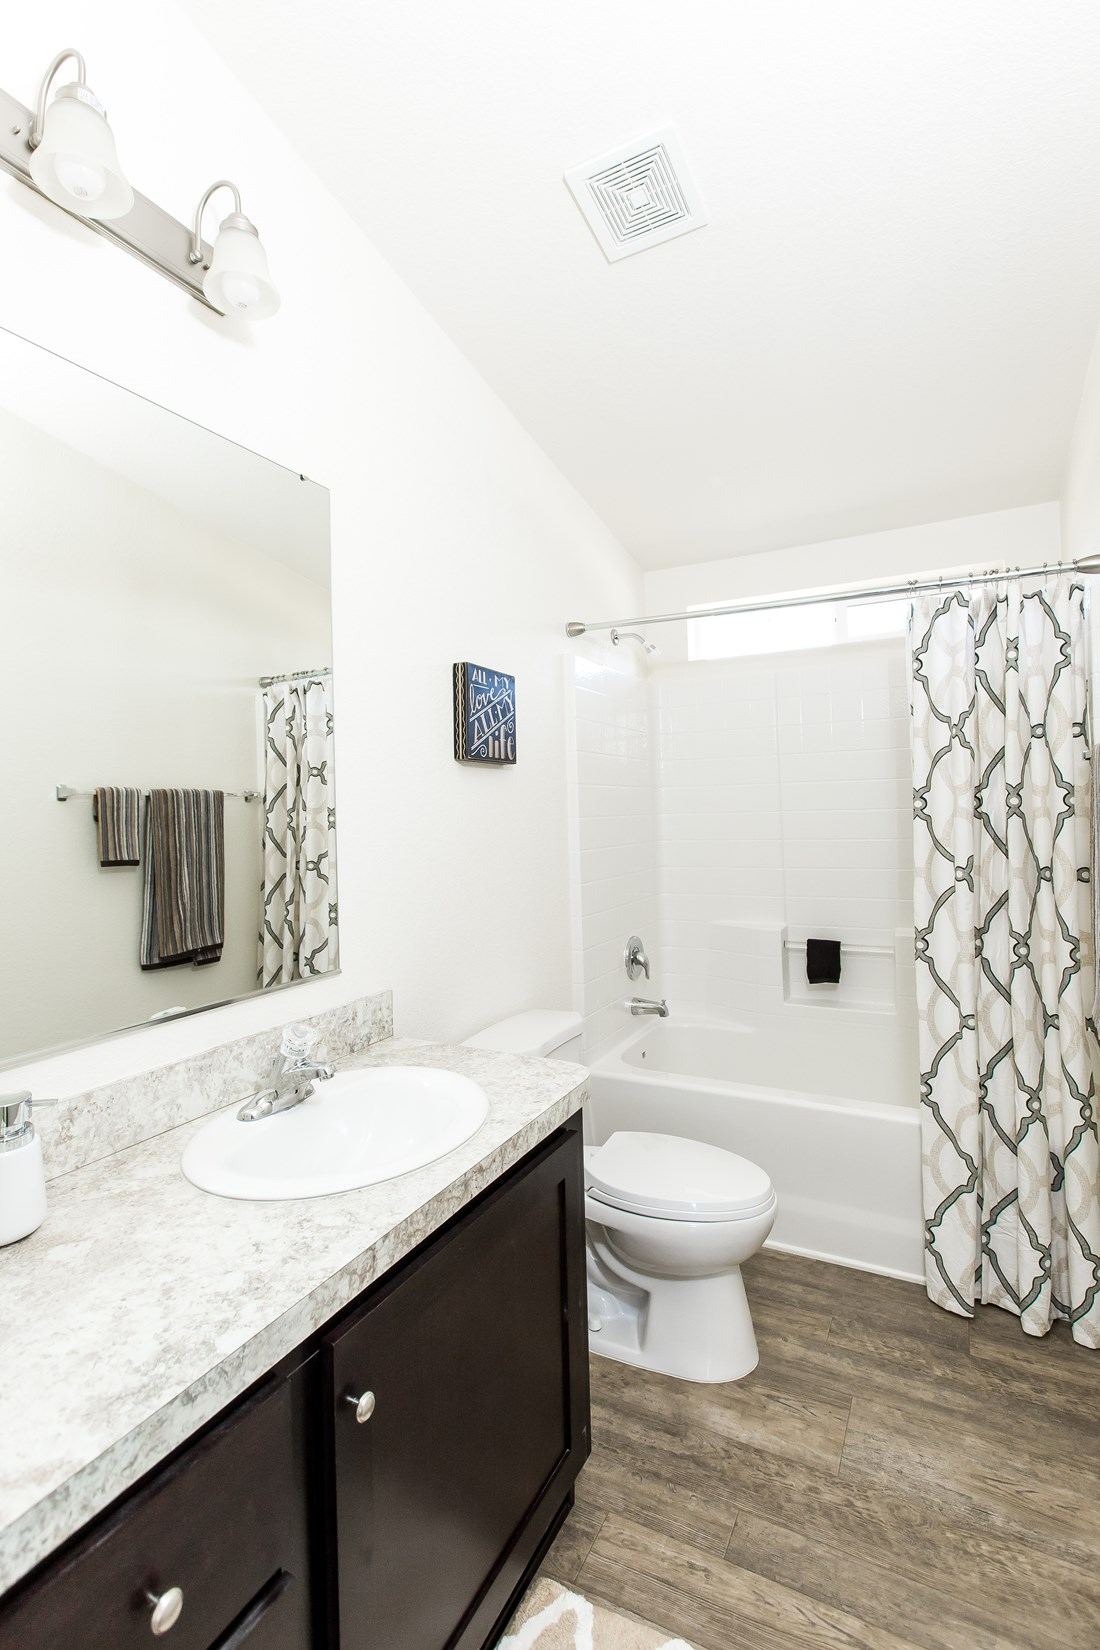 The CK522F Guest Bathroom. This Manufactured Mobile Home features 4 bedrooms and 2 baths.